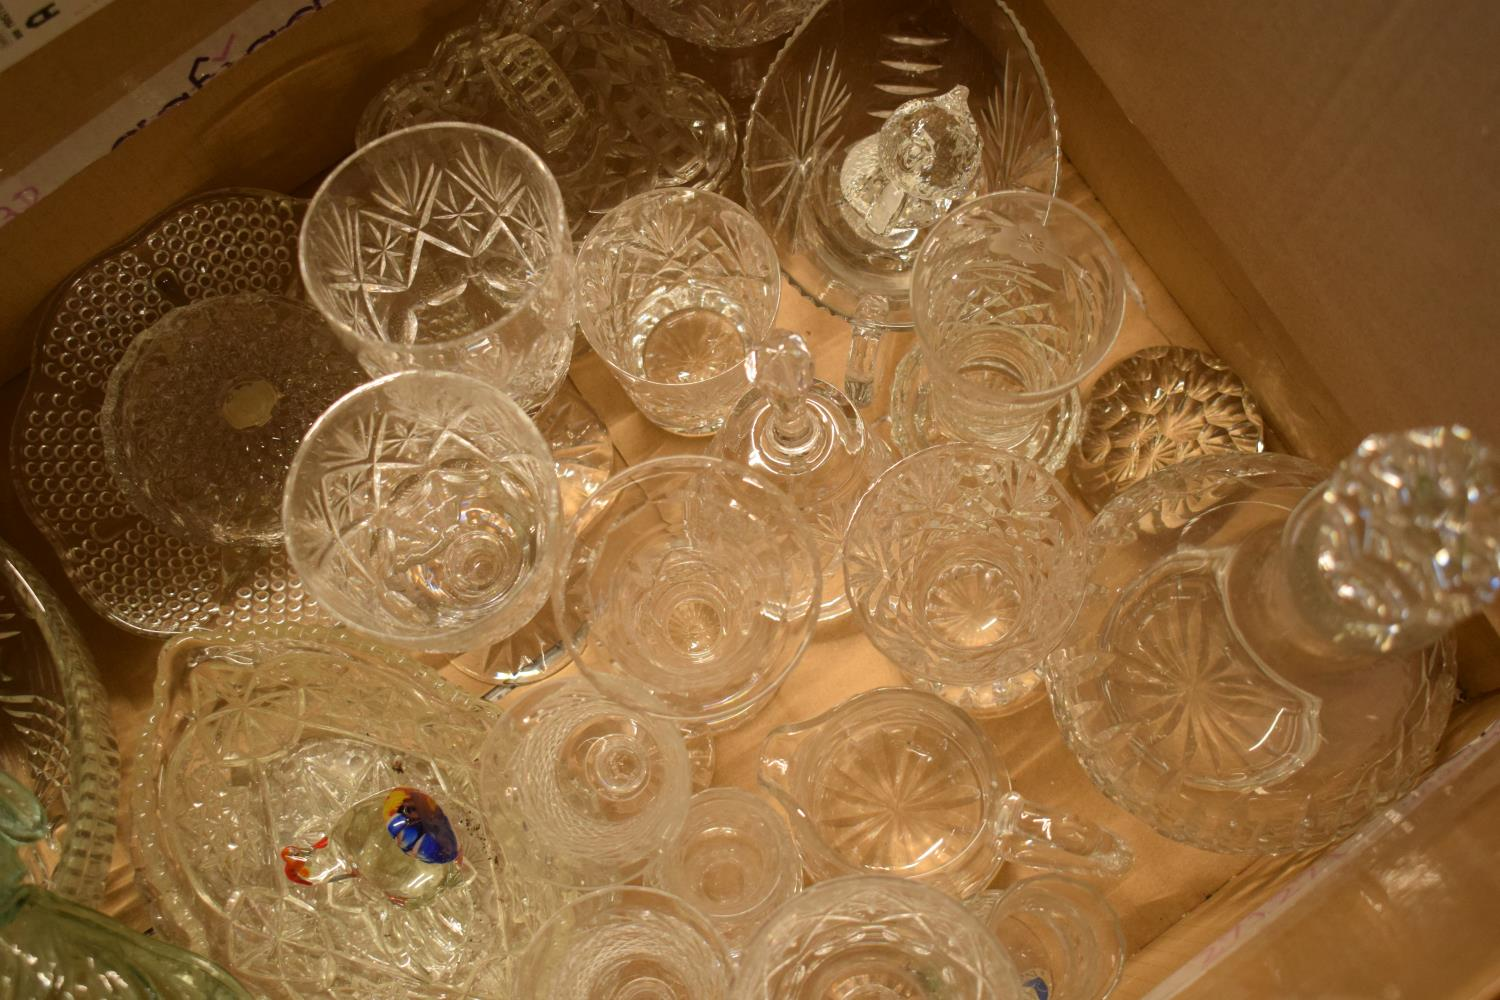 A mixed collection of glass and crystal to include glasses, decanters, tumblers etc .Condition is - Image 3 of 3